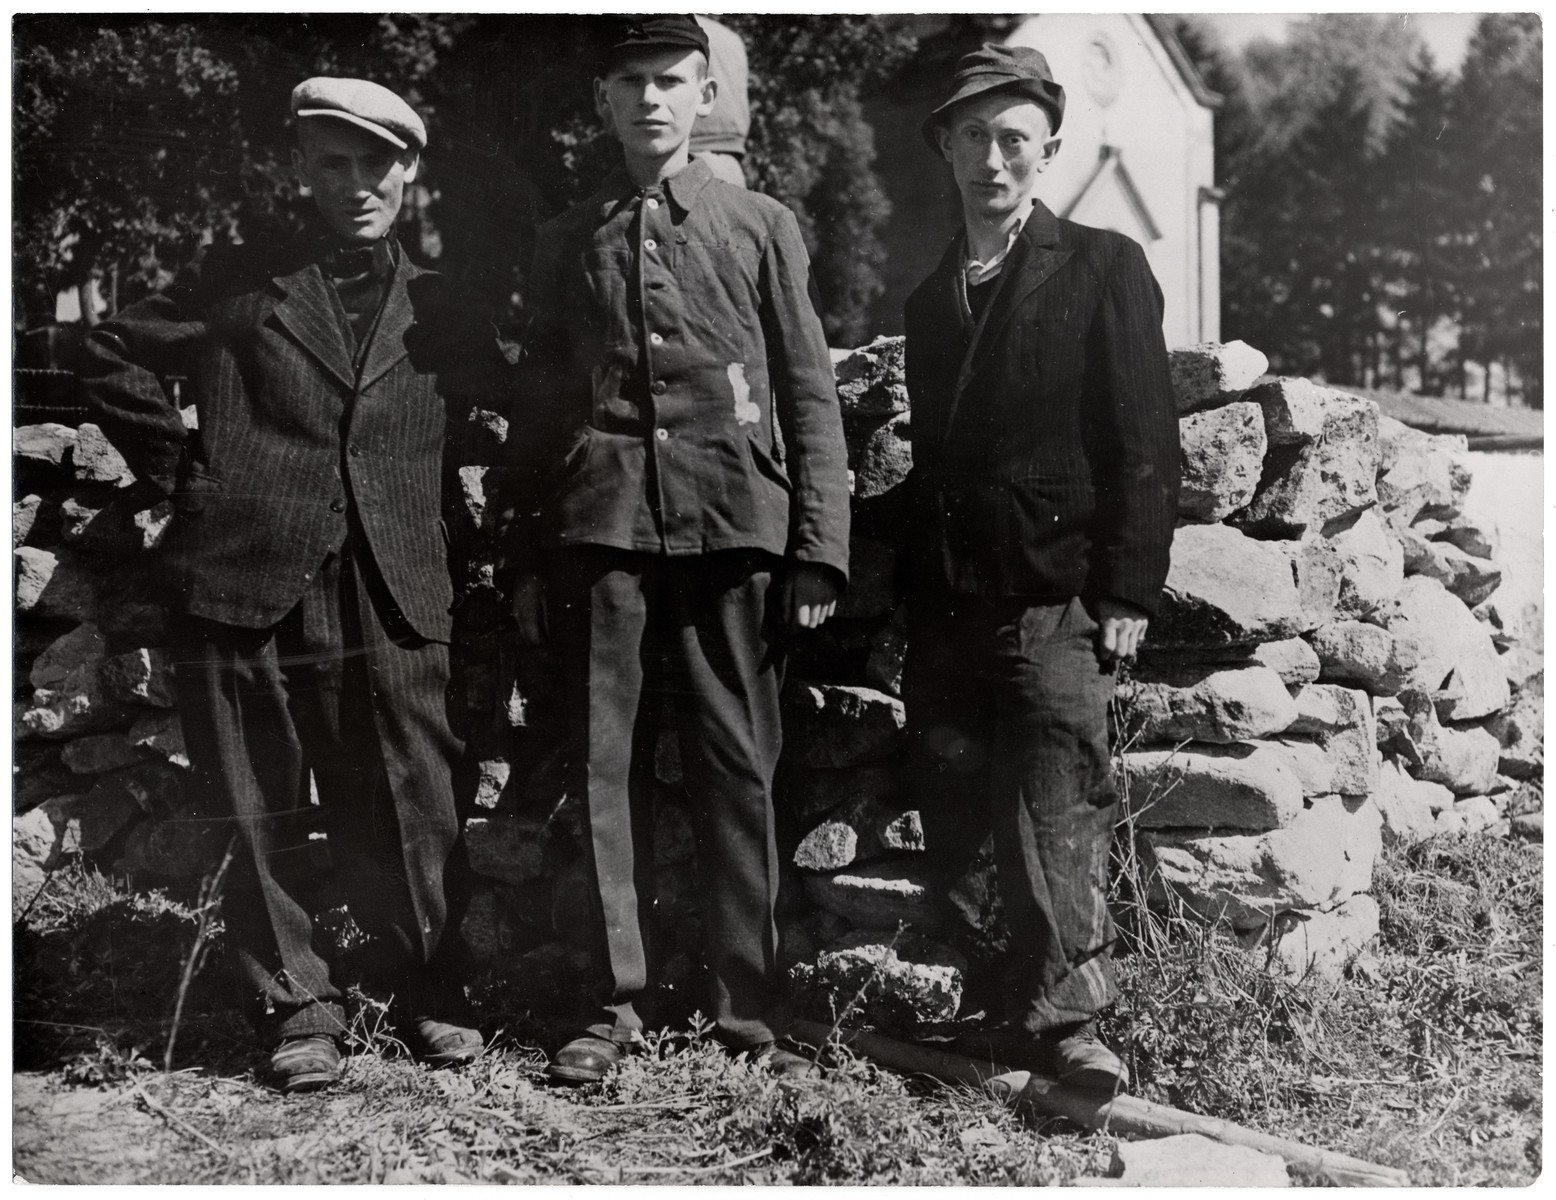 "Portrait of three survivors of the Schwartzenfeld atrocity,  Original Caption: ""These three Polish Jews escaped the fate of many of their comrades. They hid in a cellar of a nearby home during an American air attack on the area and remained there until the arrival of Third Army troops.  When the troops of the 26th Infantry Divion, Third U.S. Army, captured Schwarzenfeld, Germany, April 22, 1945, another story of Nazi murder and atrocity was revealed. The Americans discovered that many hundreds of helpless persons, including allied prisoners-of-war and Polish Jewish slave laborers, had been shot in cold blood by Nazi SS troops, and their bodies thrown into a mass grave. The execution took place one day before the American forces captured the town. Schwarzenfeld is 47 miles east of Nuremberg and 28 miles west of the Czechoslovakian border.""  The original Signal Corps caption reads, ""THIRD U.S. ARMY DISCOVERS NAZI ATROCITY.  When troops of the 26th Infantry Division, Third U.S. Army, captured Schwarzenfeld, Germany, April 22, 1945, another story of Nazi murder and atrocity was revealed.  The Americans discovered that many hundreds of helpless persons, including Allied prisoners-of-war and Polish Jewish slave laborers, had been shot in cold blood by Nazi SS troops, and their bodies thrown into a mass grave.  The executions took place on the day before the American forces captured the town.  After making official record of the circumstances, U.S. Military Government officers ordered local German civilians to exhume the bodies and provide coffins and a civilized burial for the victims.  Schwarzenfeld is 47 miles east of Nuremburg and 28 miles west of the Czechoslovakian border.  BIPPA                                                        EA 64393  THIS PHOTO SHOWS:  These three Polish Jews escaped the fate of many of their comrades.  They hid in a cellar of a nearby home during an American air attack on the area and remained there until the arrrival of Third Army troops.  U.S. Signal Corps Photo ETO-HQ-45-34027. SERVICED BY LONDON OWI TO LIST B CERTIFIED AS PASSED BY SCHAEF CENSOR"